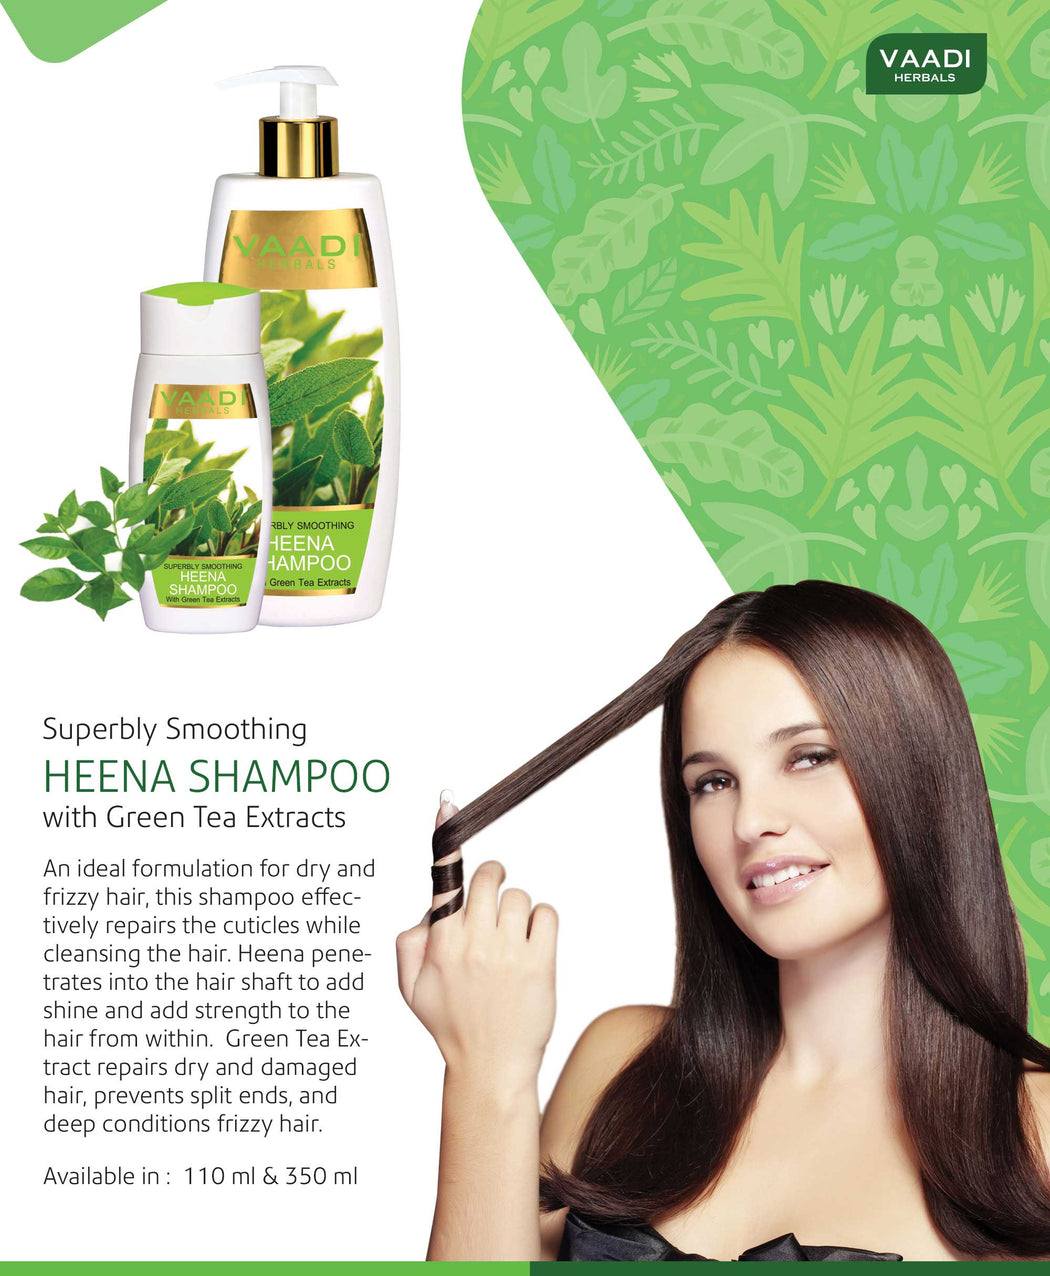 Superbly Smoothing Organic Heena Shampoo with Green Tea Extract (3 x 350 ml/12 fl oz)